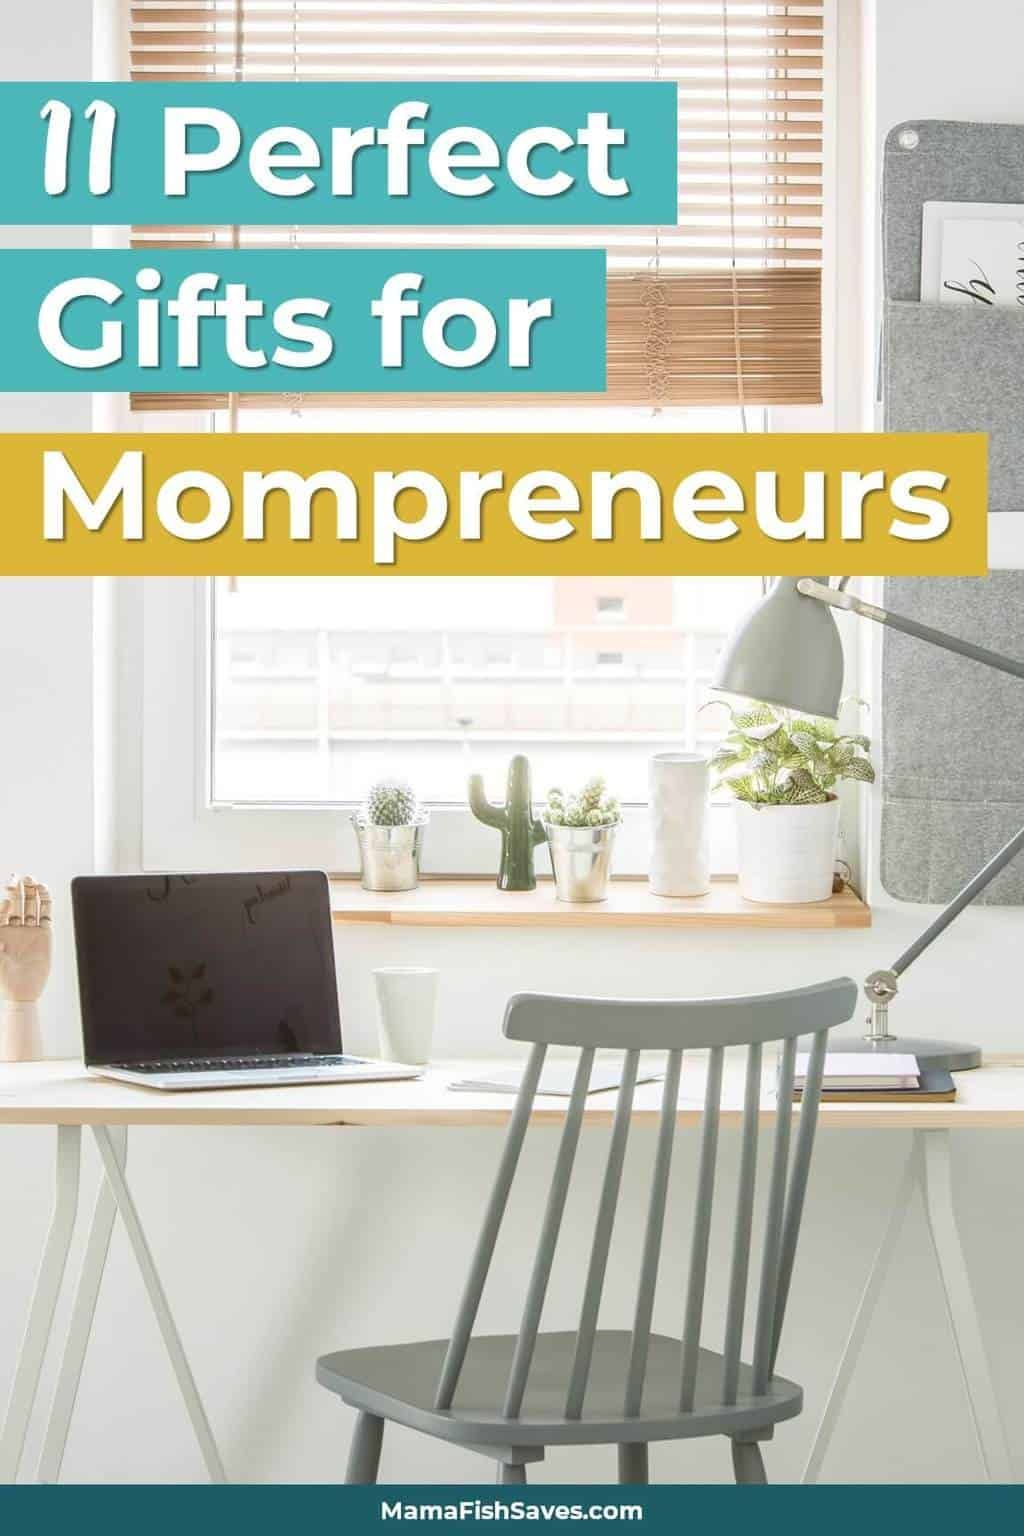 Can Someone Send This To My Husband Love These Gift Ideas For At Home Entrepreneurs Would Really Get That Light Therapy Lamp Or A Membership